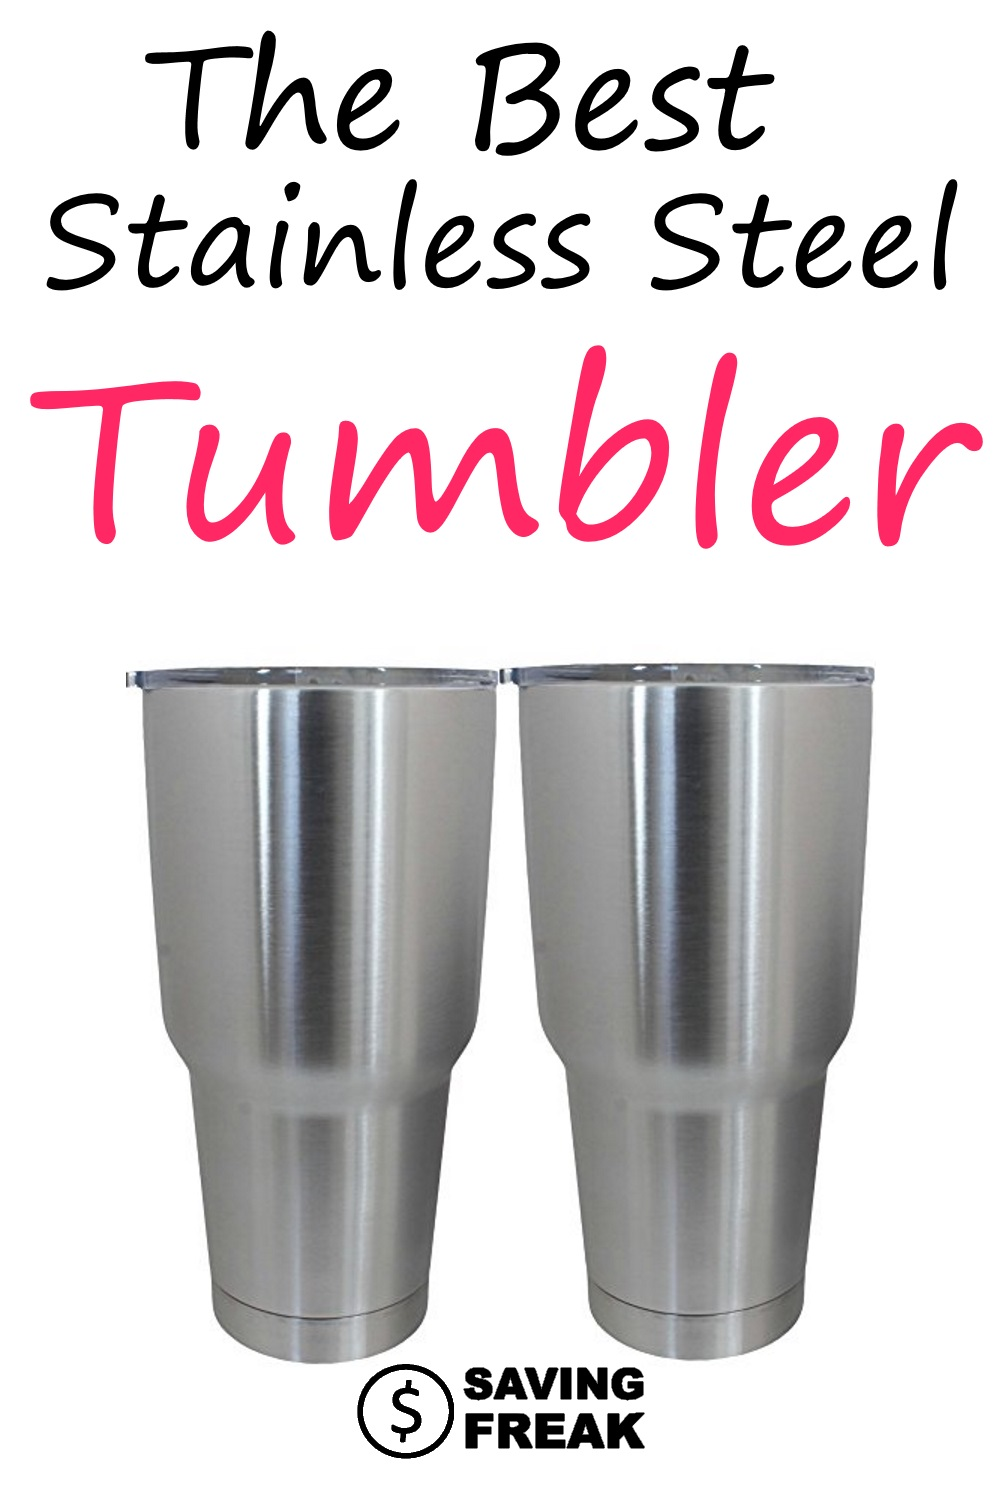 yeti vs rtic vs orca vs ozark trail - the best stainless steel insulated tumblers